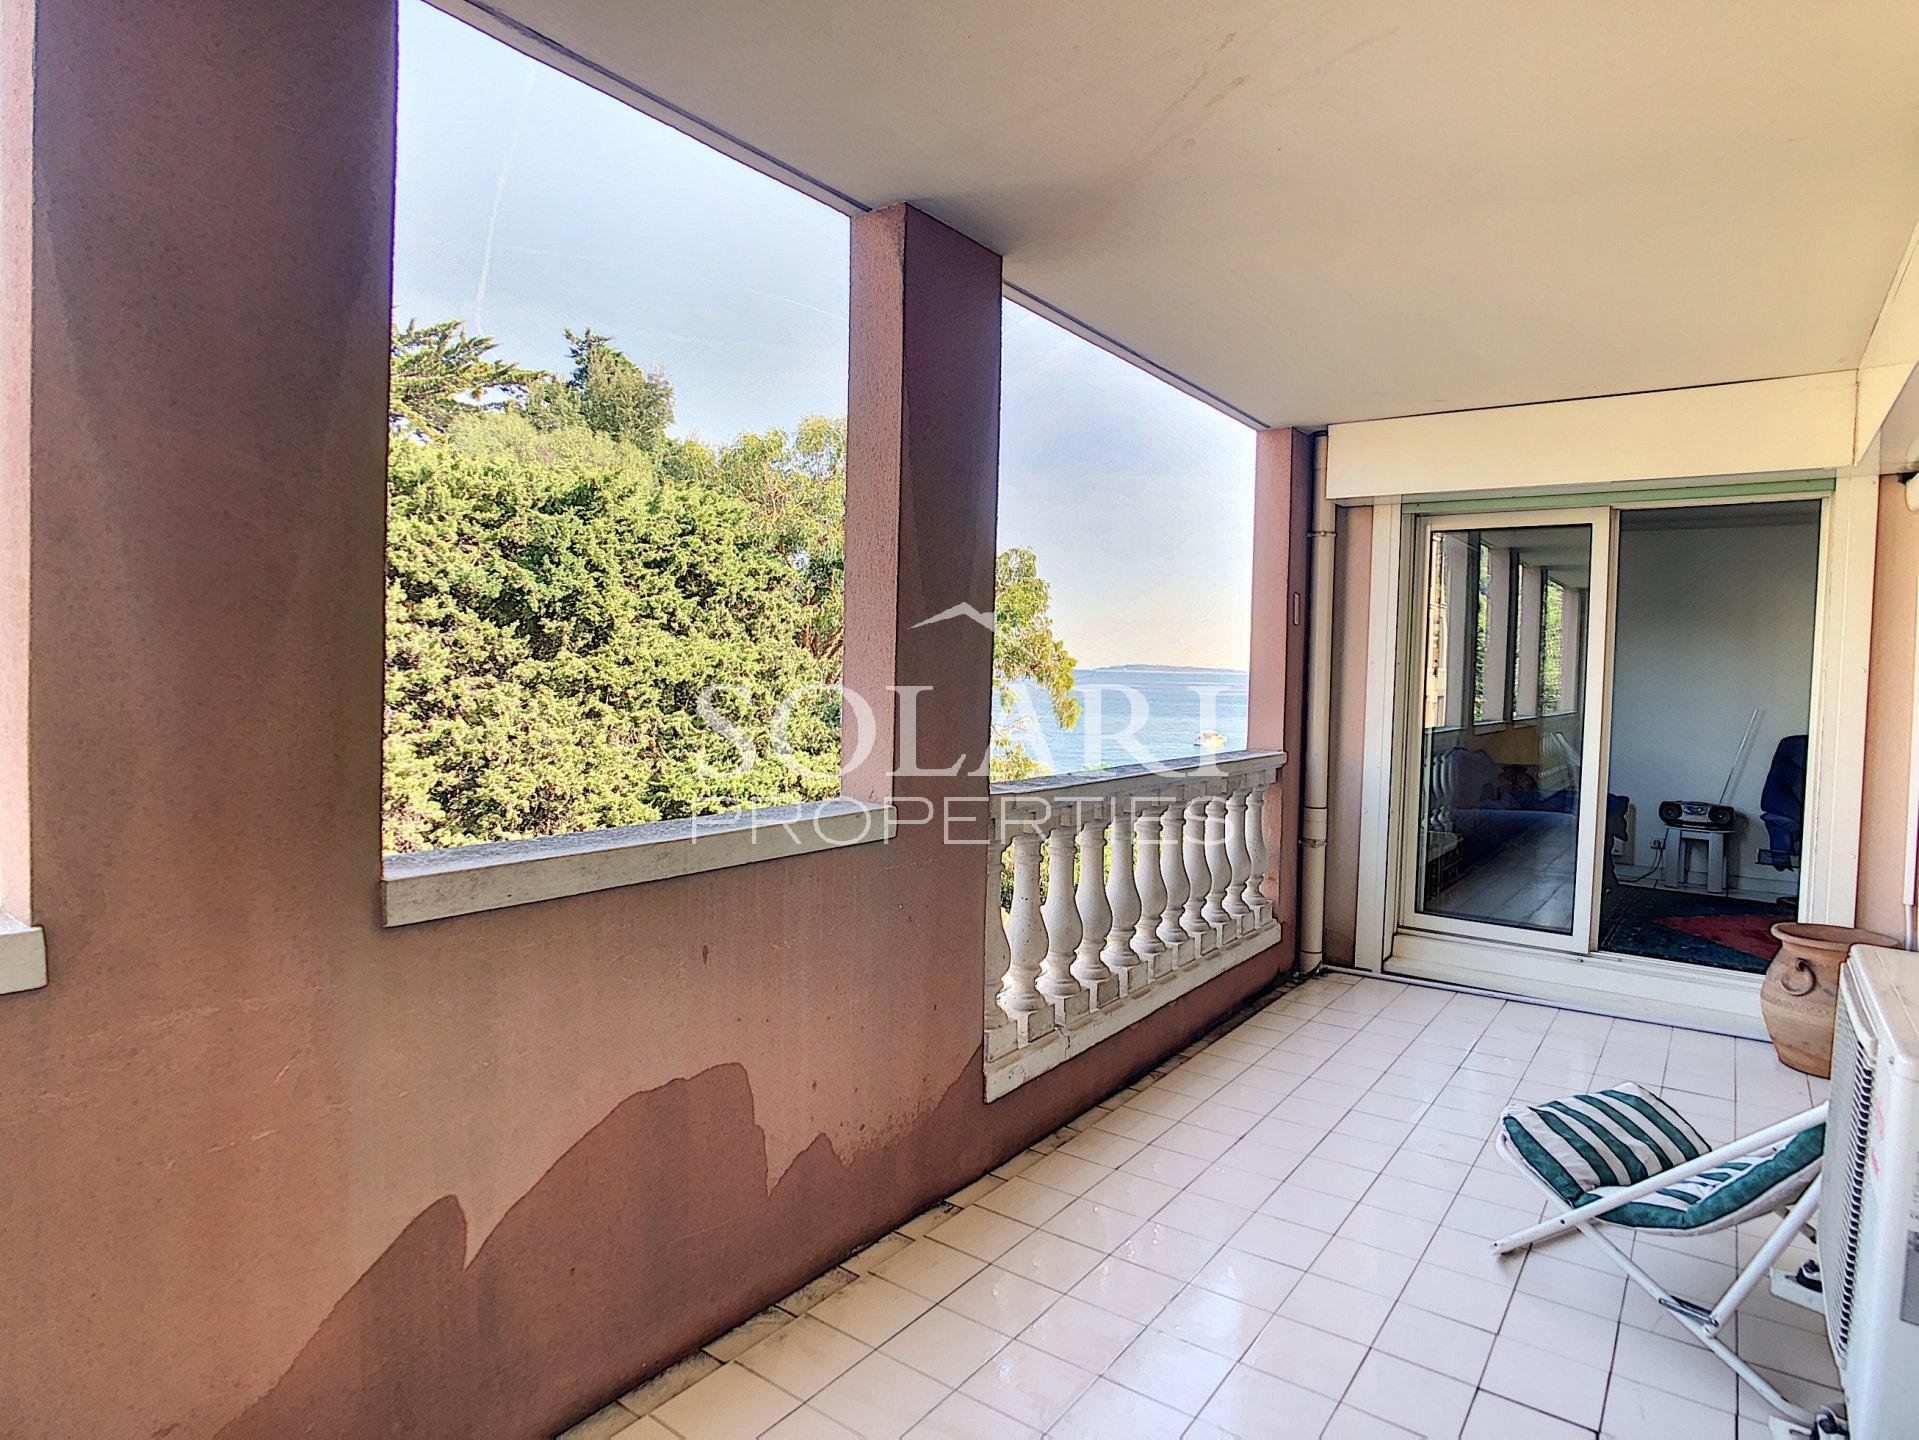 2 bedroom apartment in Théoule beachfront